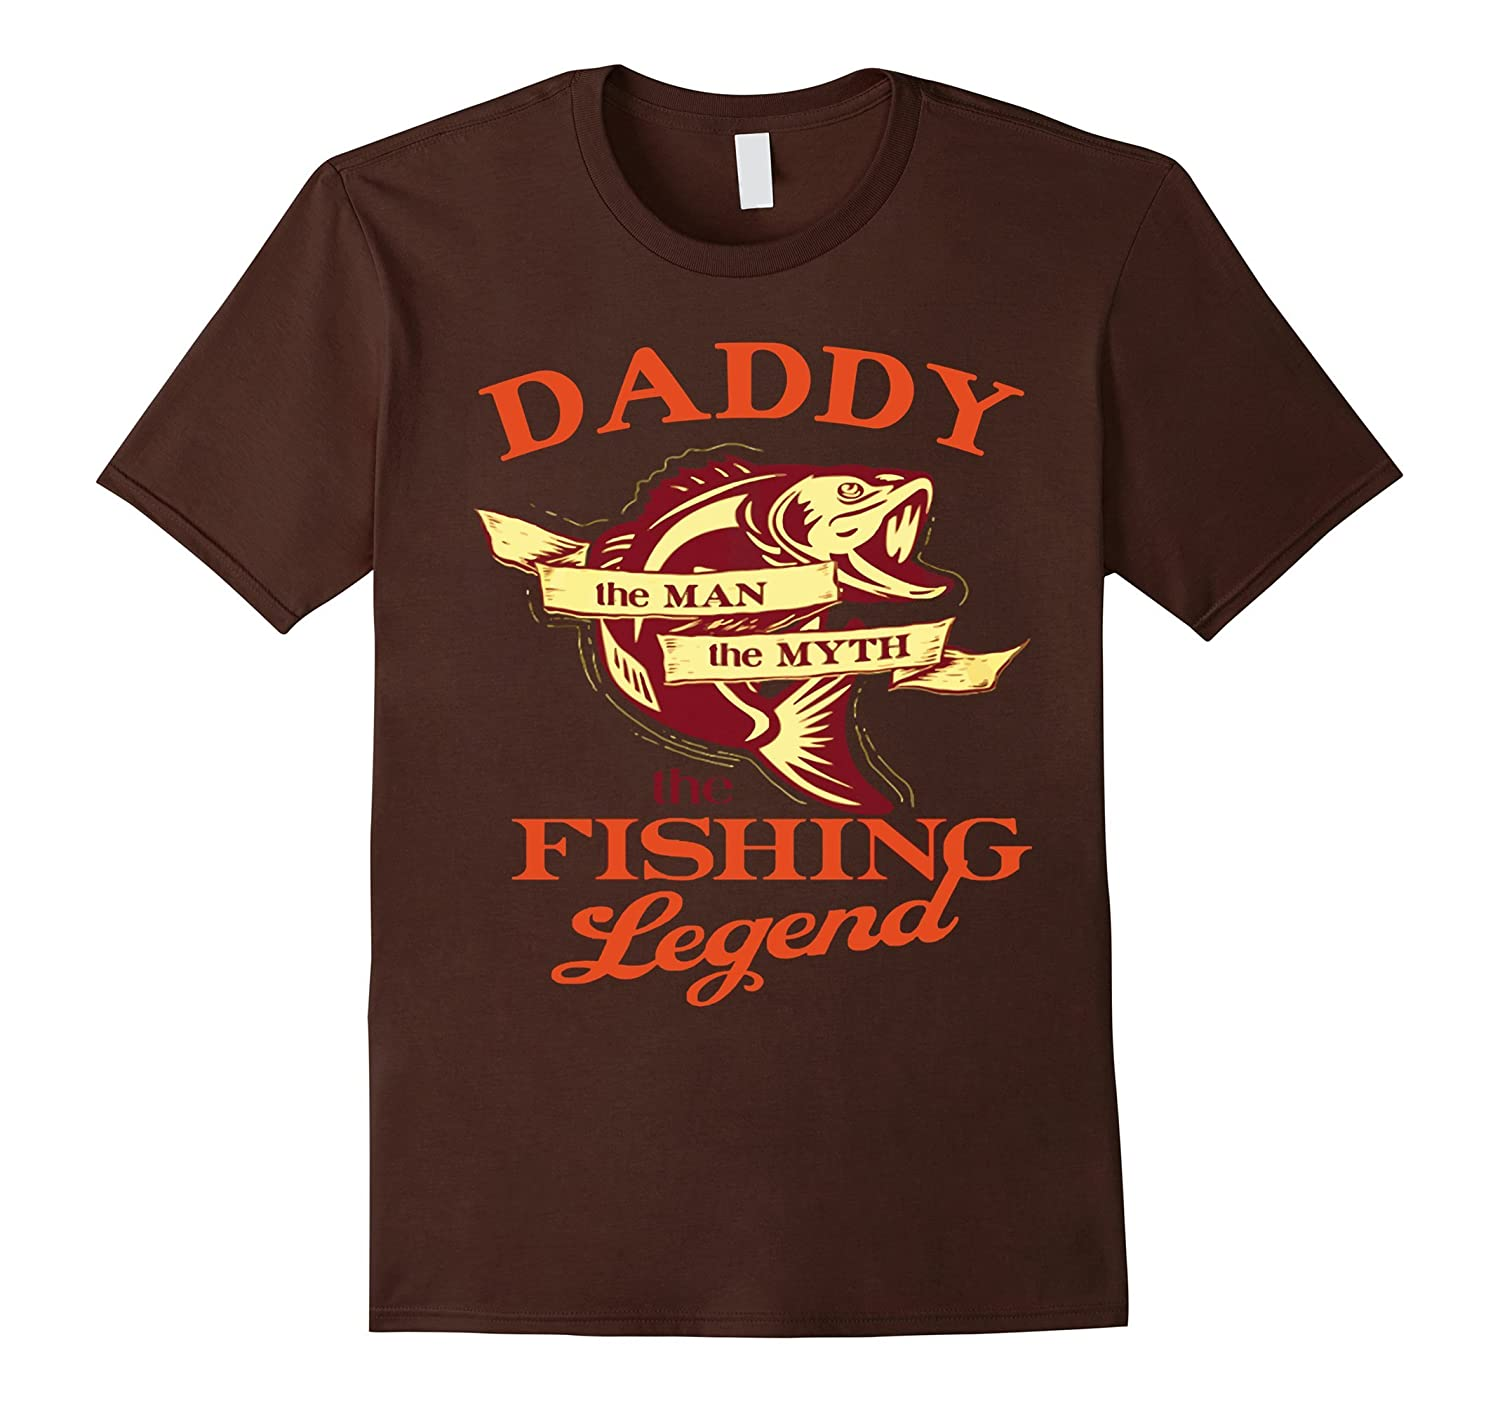 Mens Dad shirt DADDY - THE MAN THE MYTH THE FISHING LEGEND shirt-RT